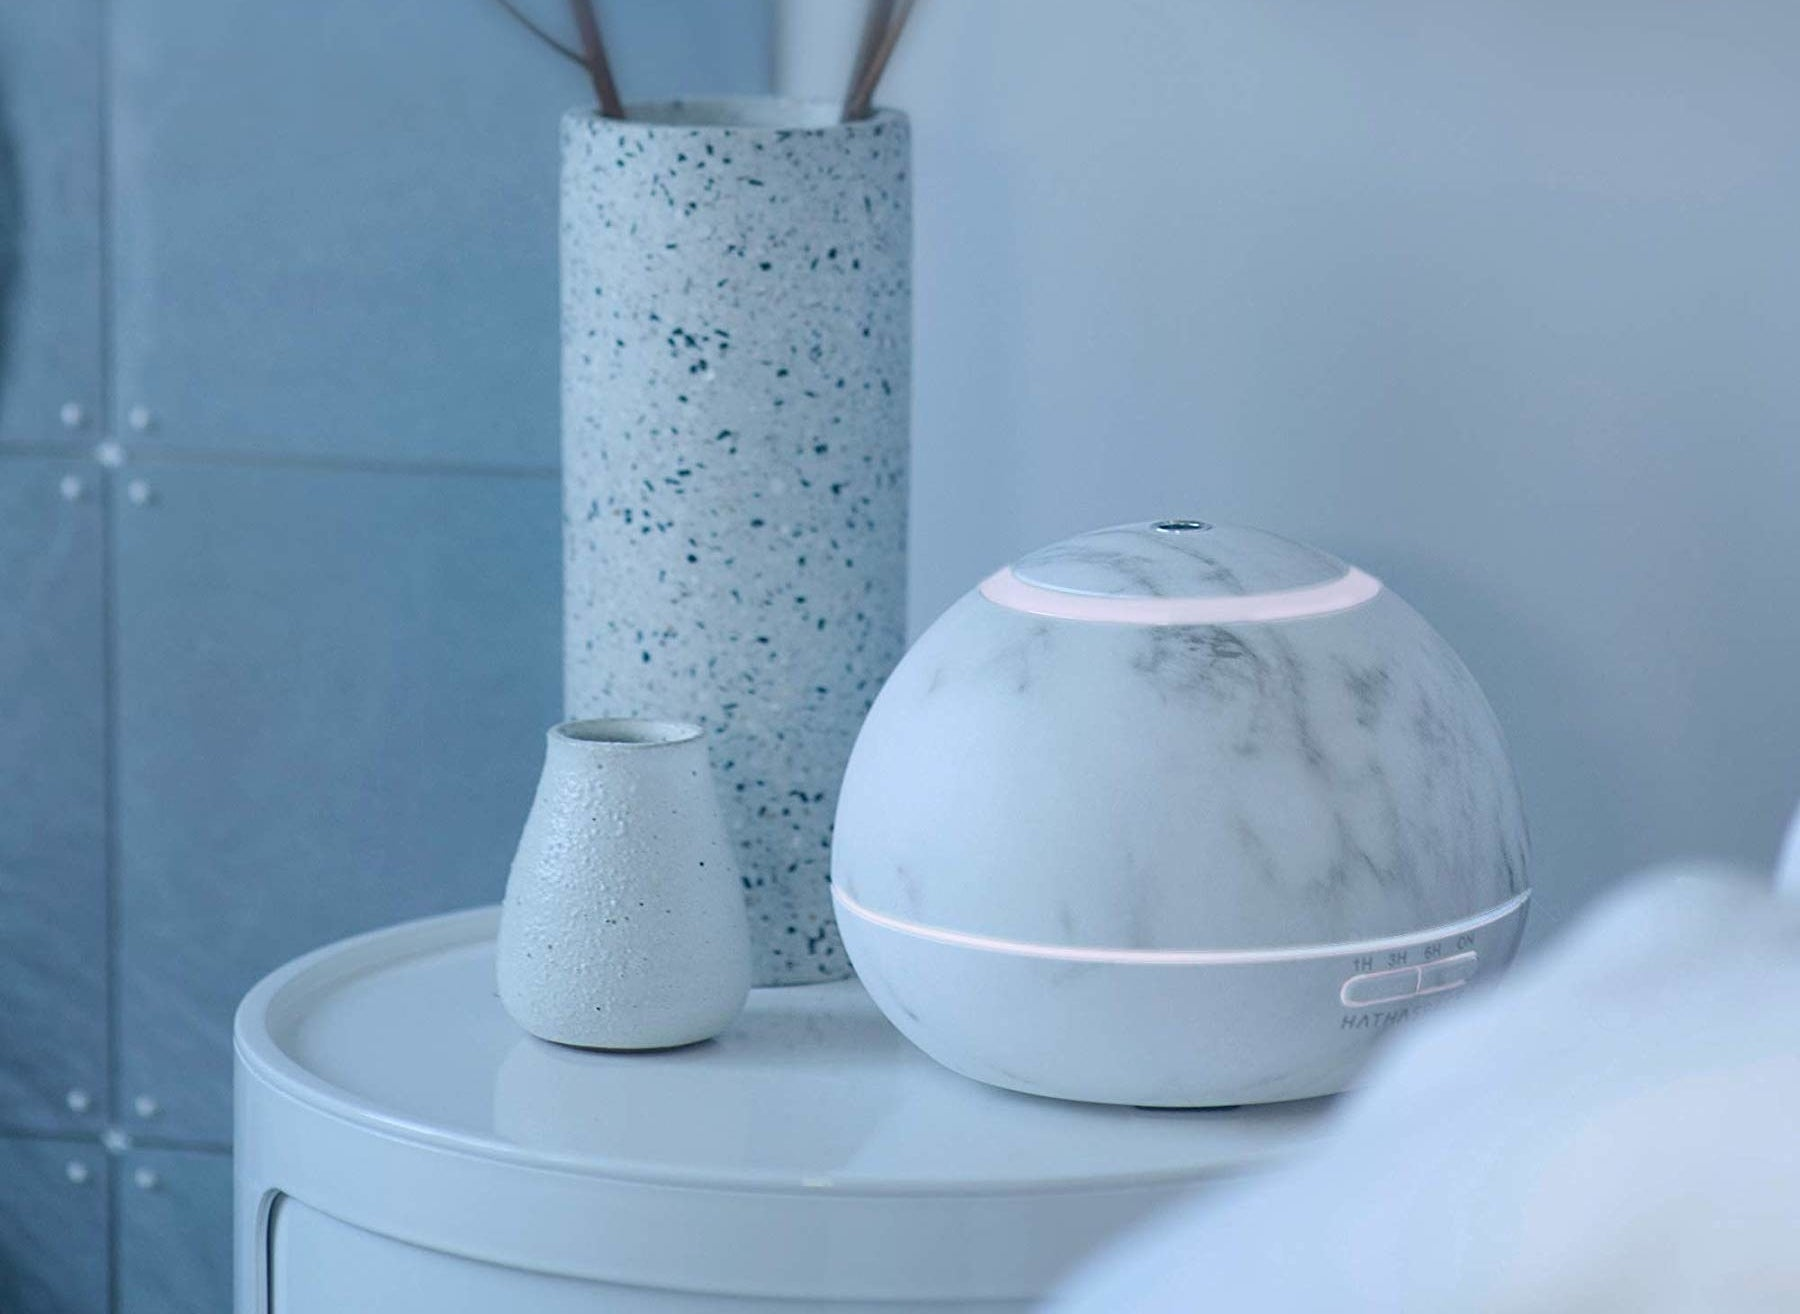 The marble-patterned aroma diffuser in white